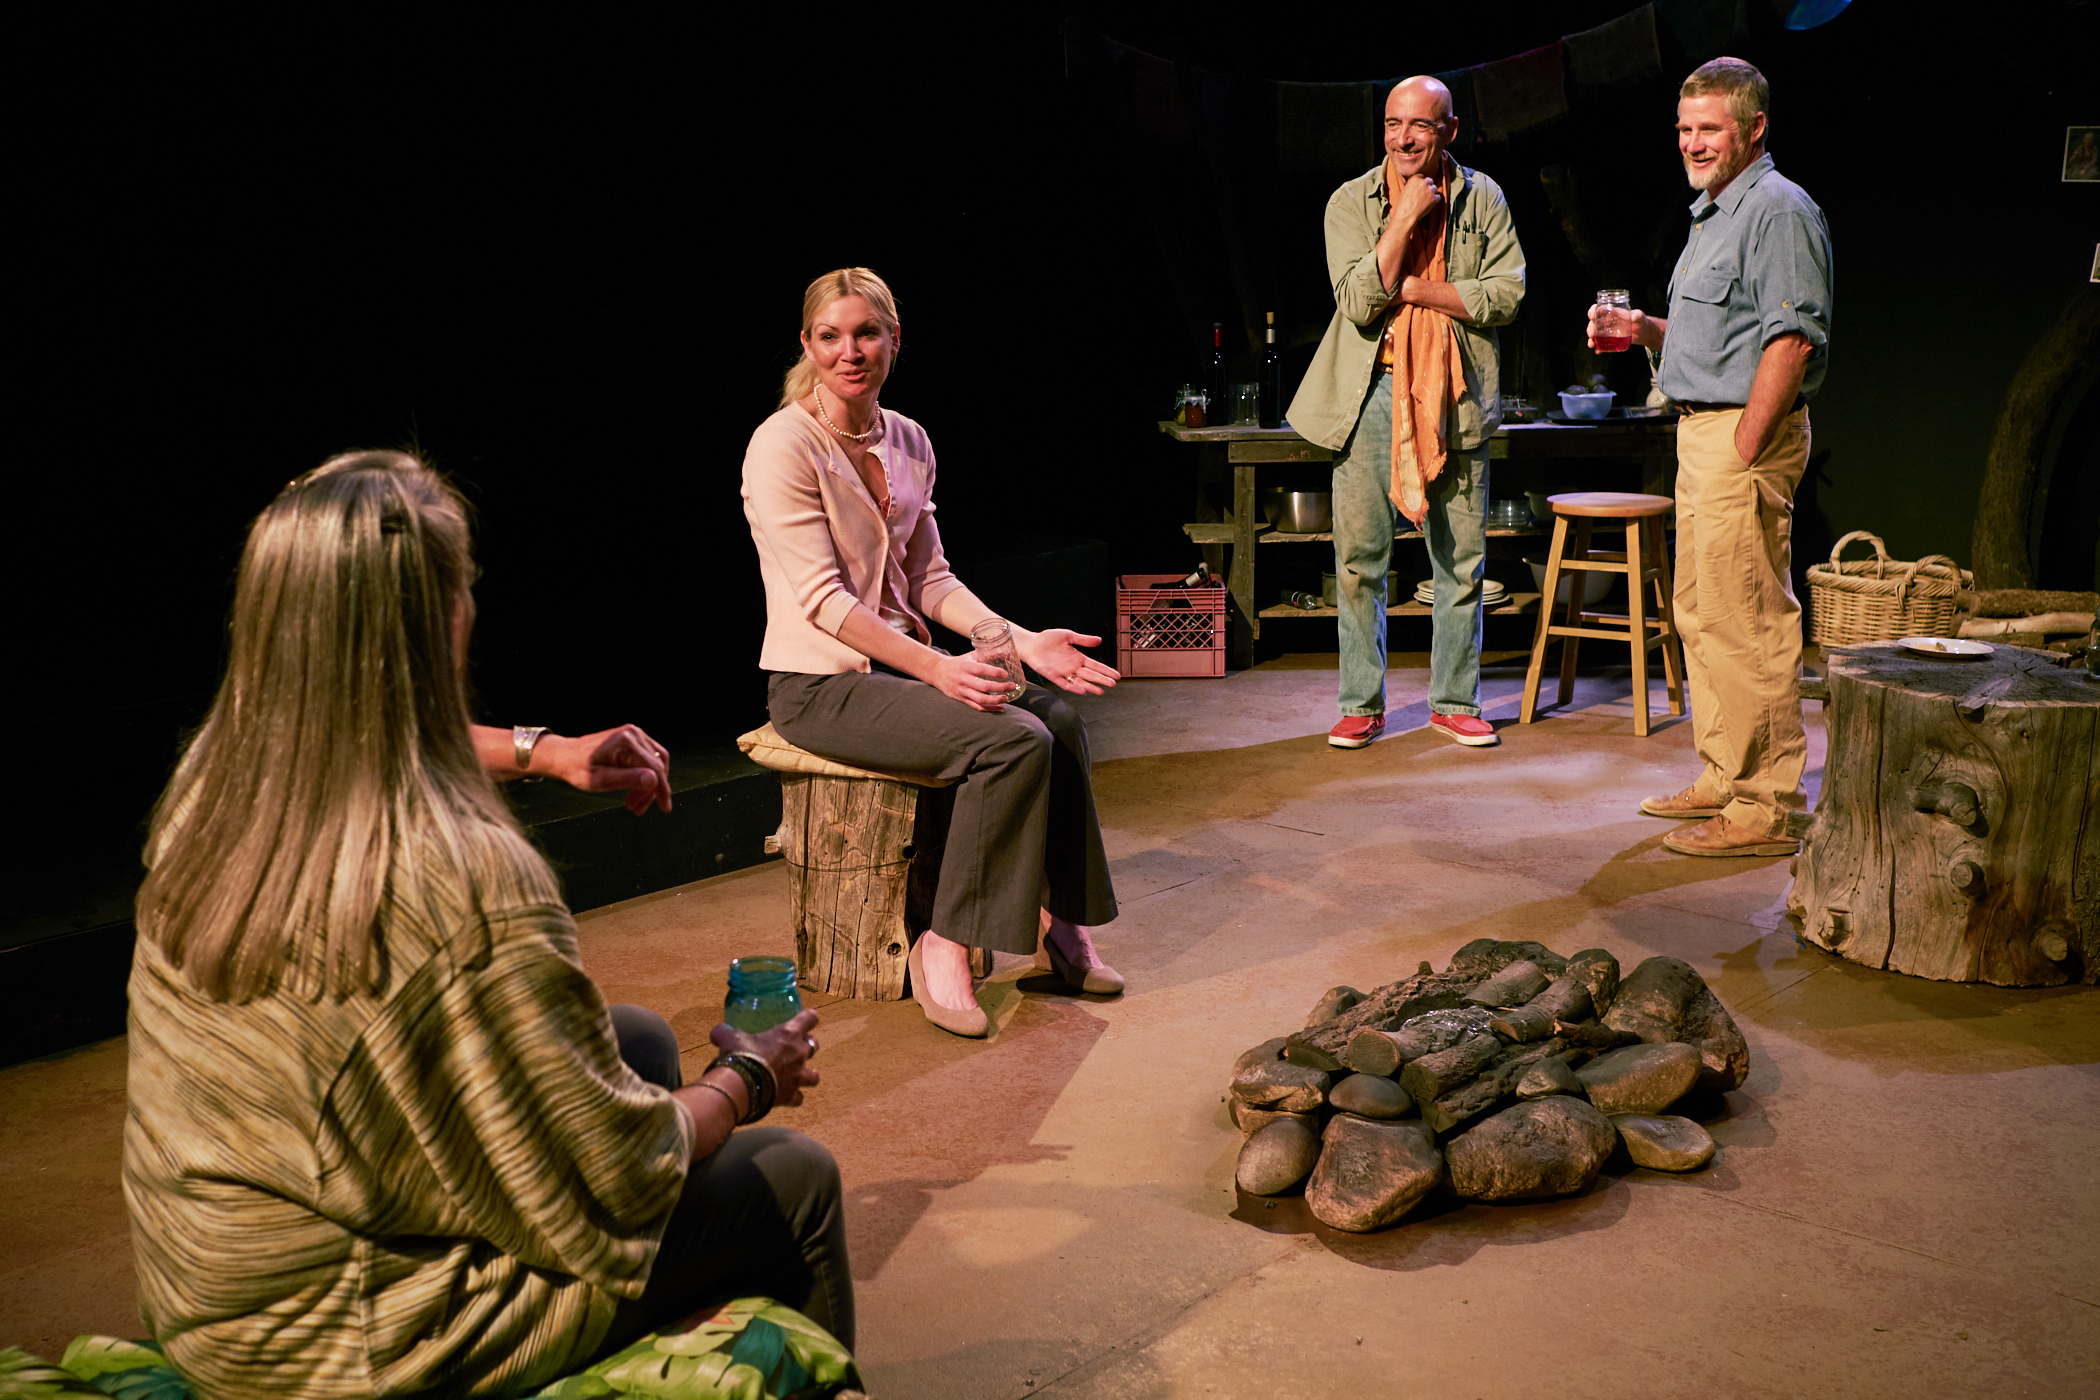 THE QUALITY OF LIFE by Jane Anderson, with Barbara Hatch, Jody Durham, Nicholas Ballas, and Patrick Briggs, 2017.